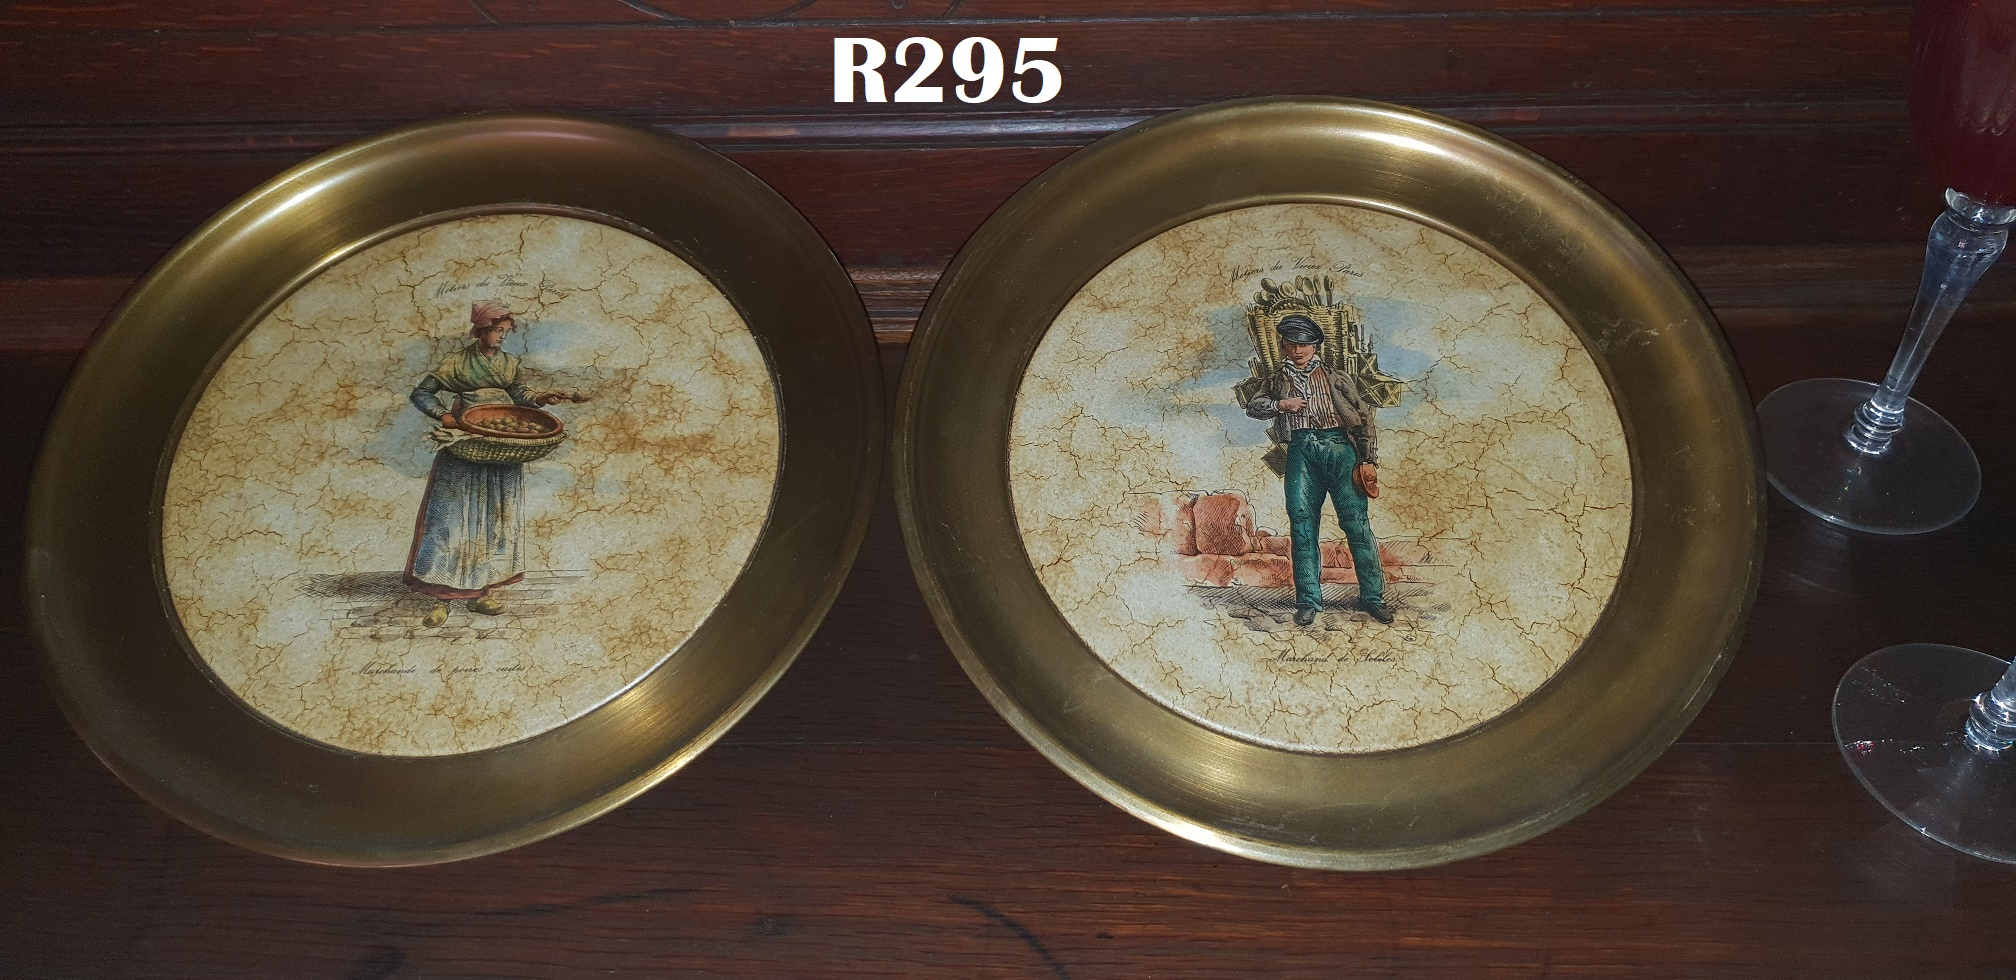 2 x Italian Brass and Pottery Plates